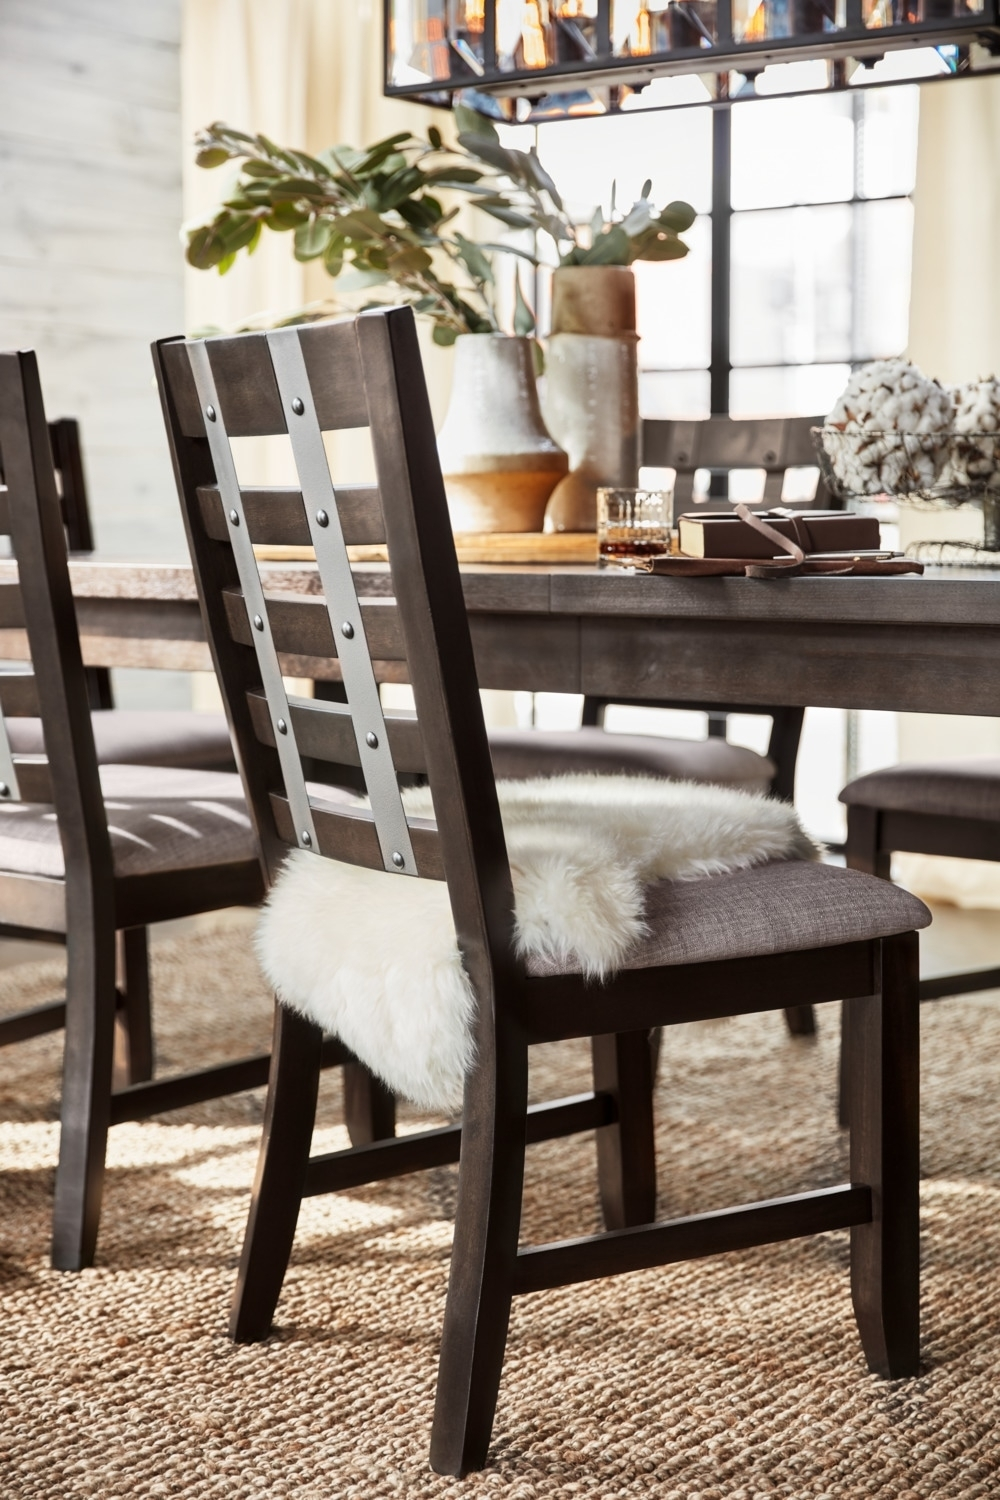 Hampton Dining Table And 6 Side Chairs – Cocoa | Value City With Regard To Most Popular Gavin 6 Piece Dining Sets With Clint Side Chairs (Photo 12 of 20)